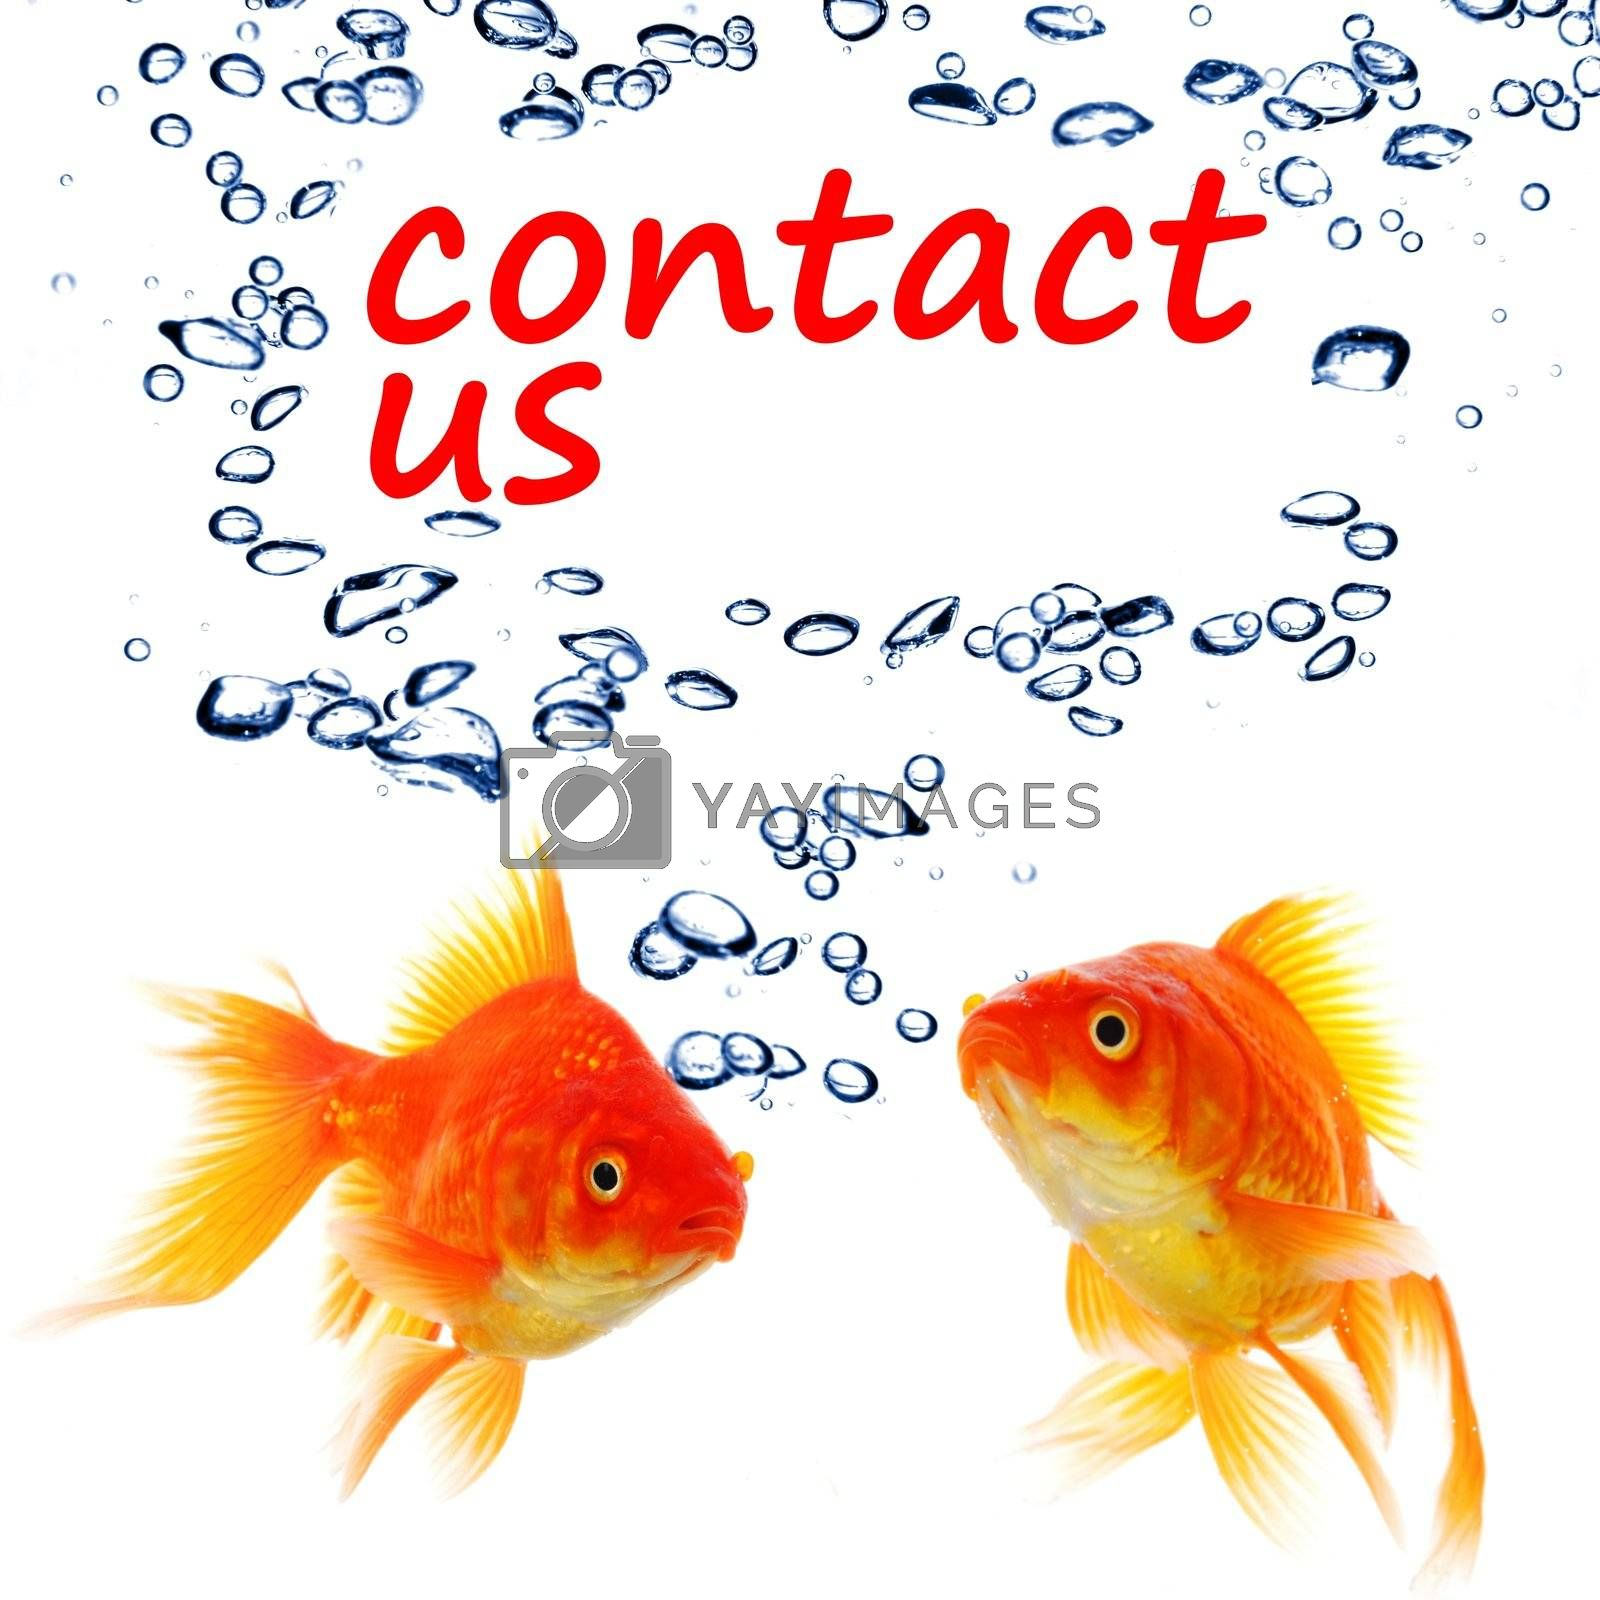 contact us concept with goldfish showing support service or email communication